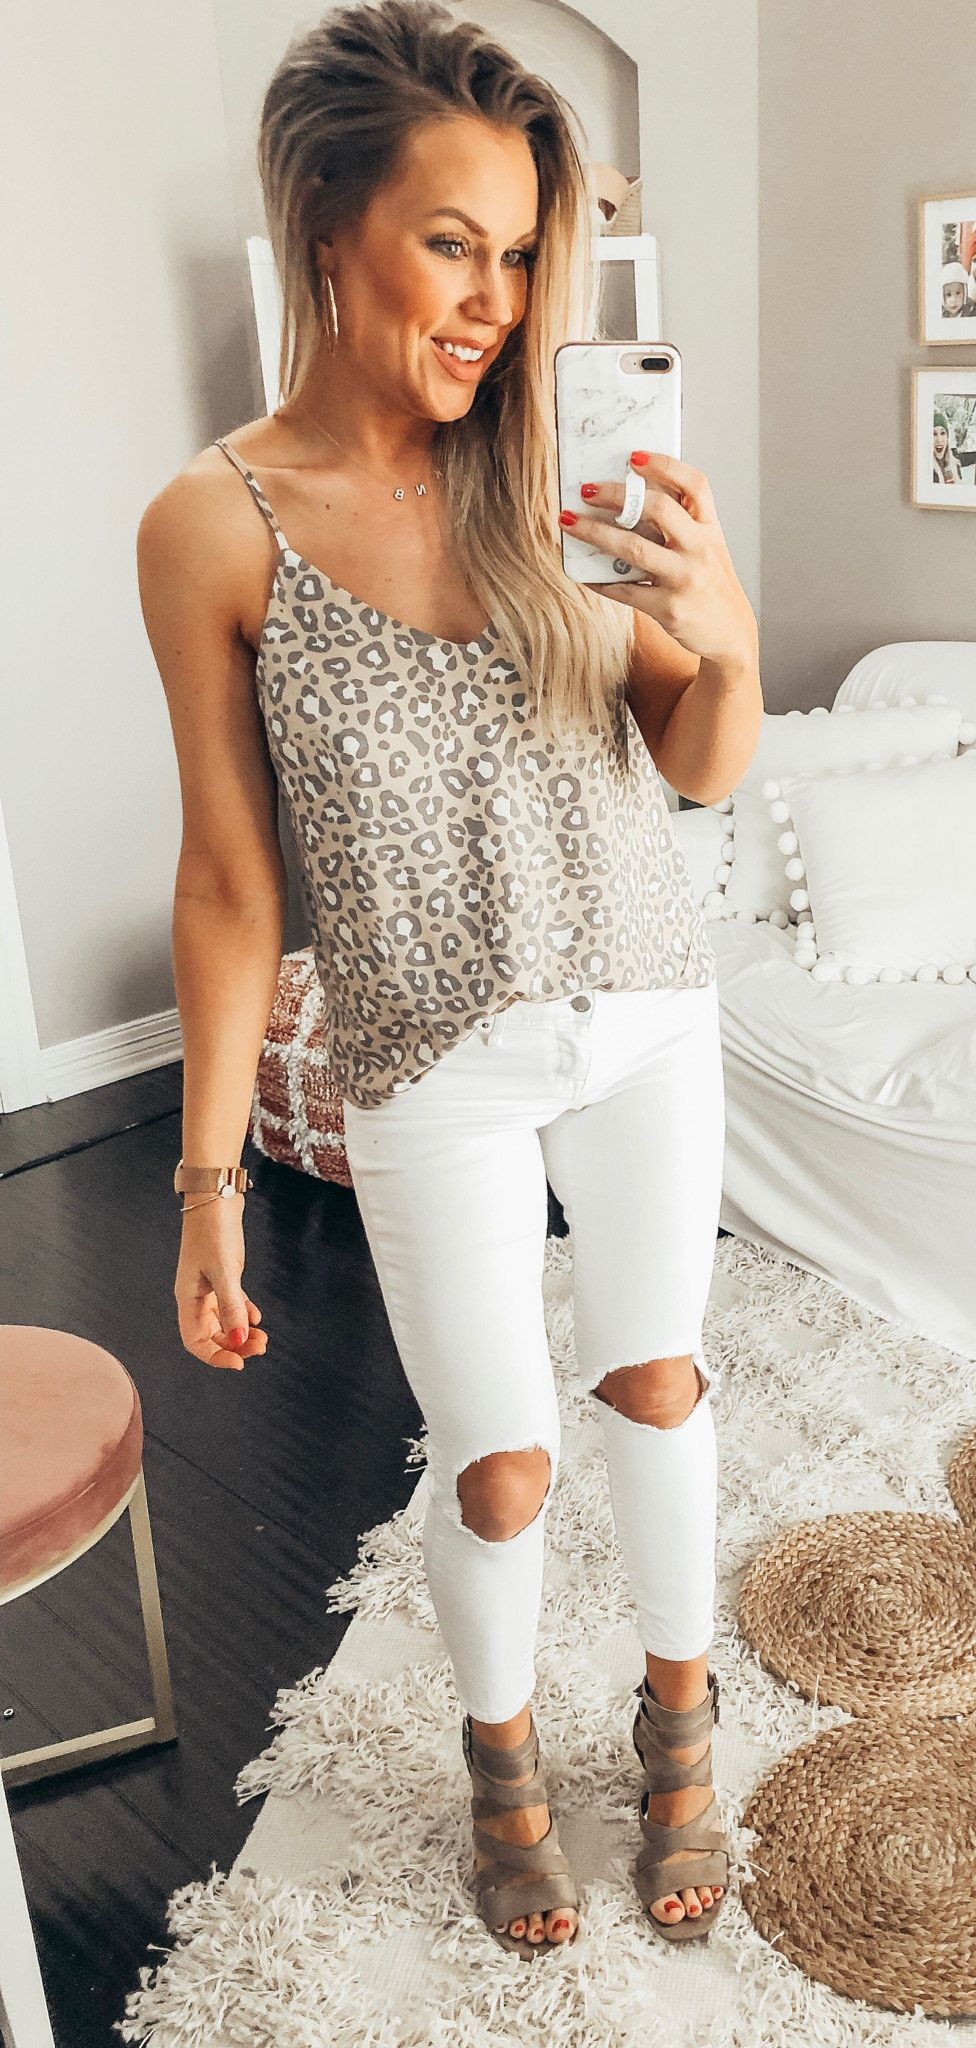 Leopard All Day, Every Day. Linking Similar Jeans. #spring #outfits